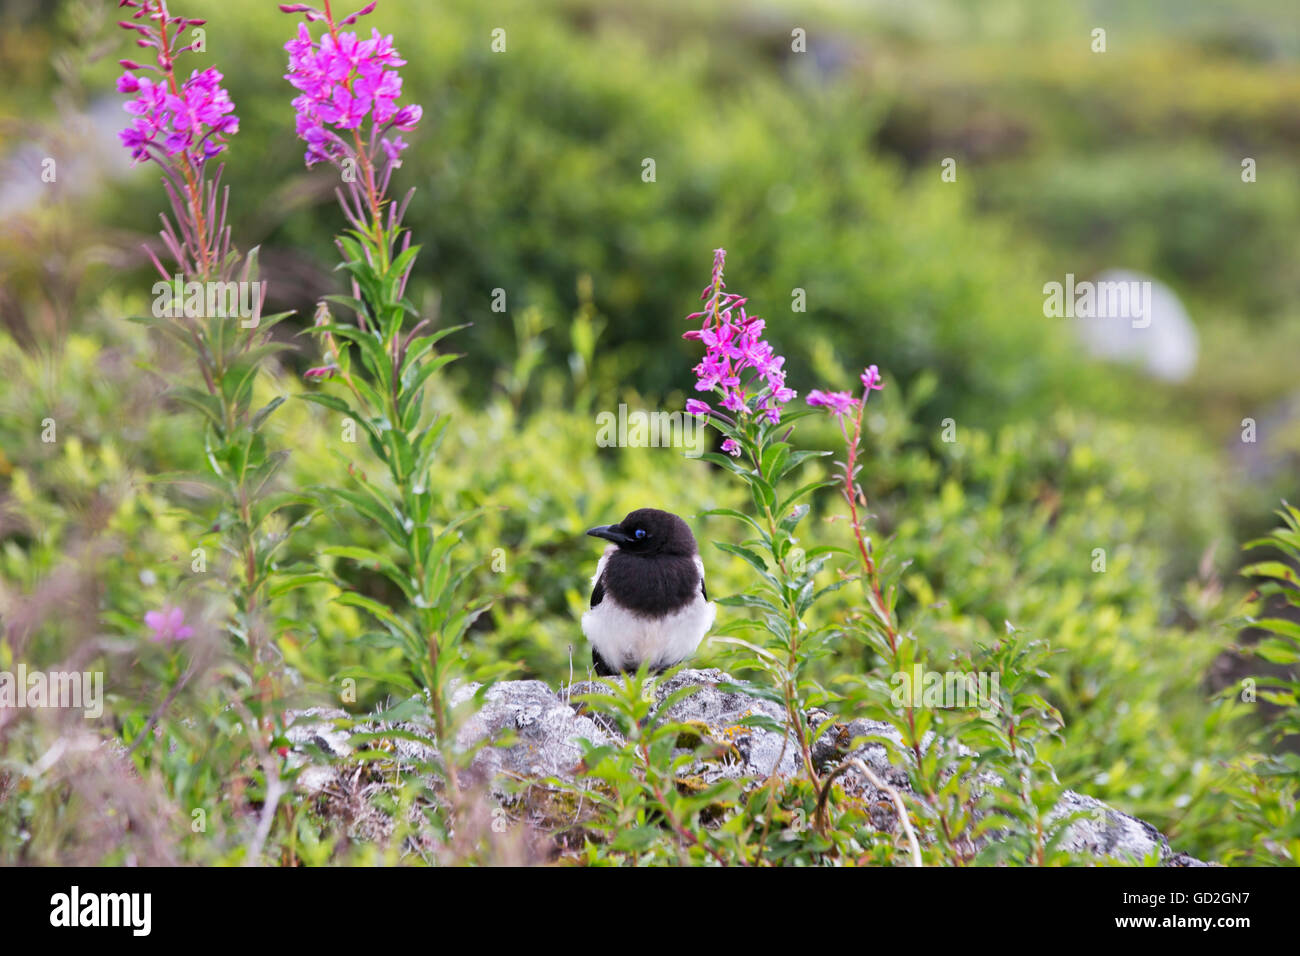 A Black-billed magpie sitting on a boulder by fireweed at Hatcher Pass, Southcentral Alaska, summer - Stock Image